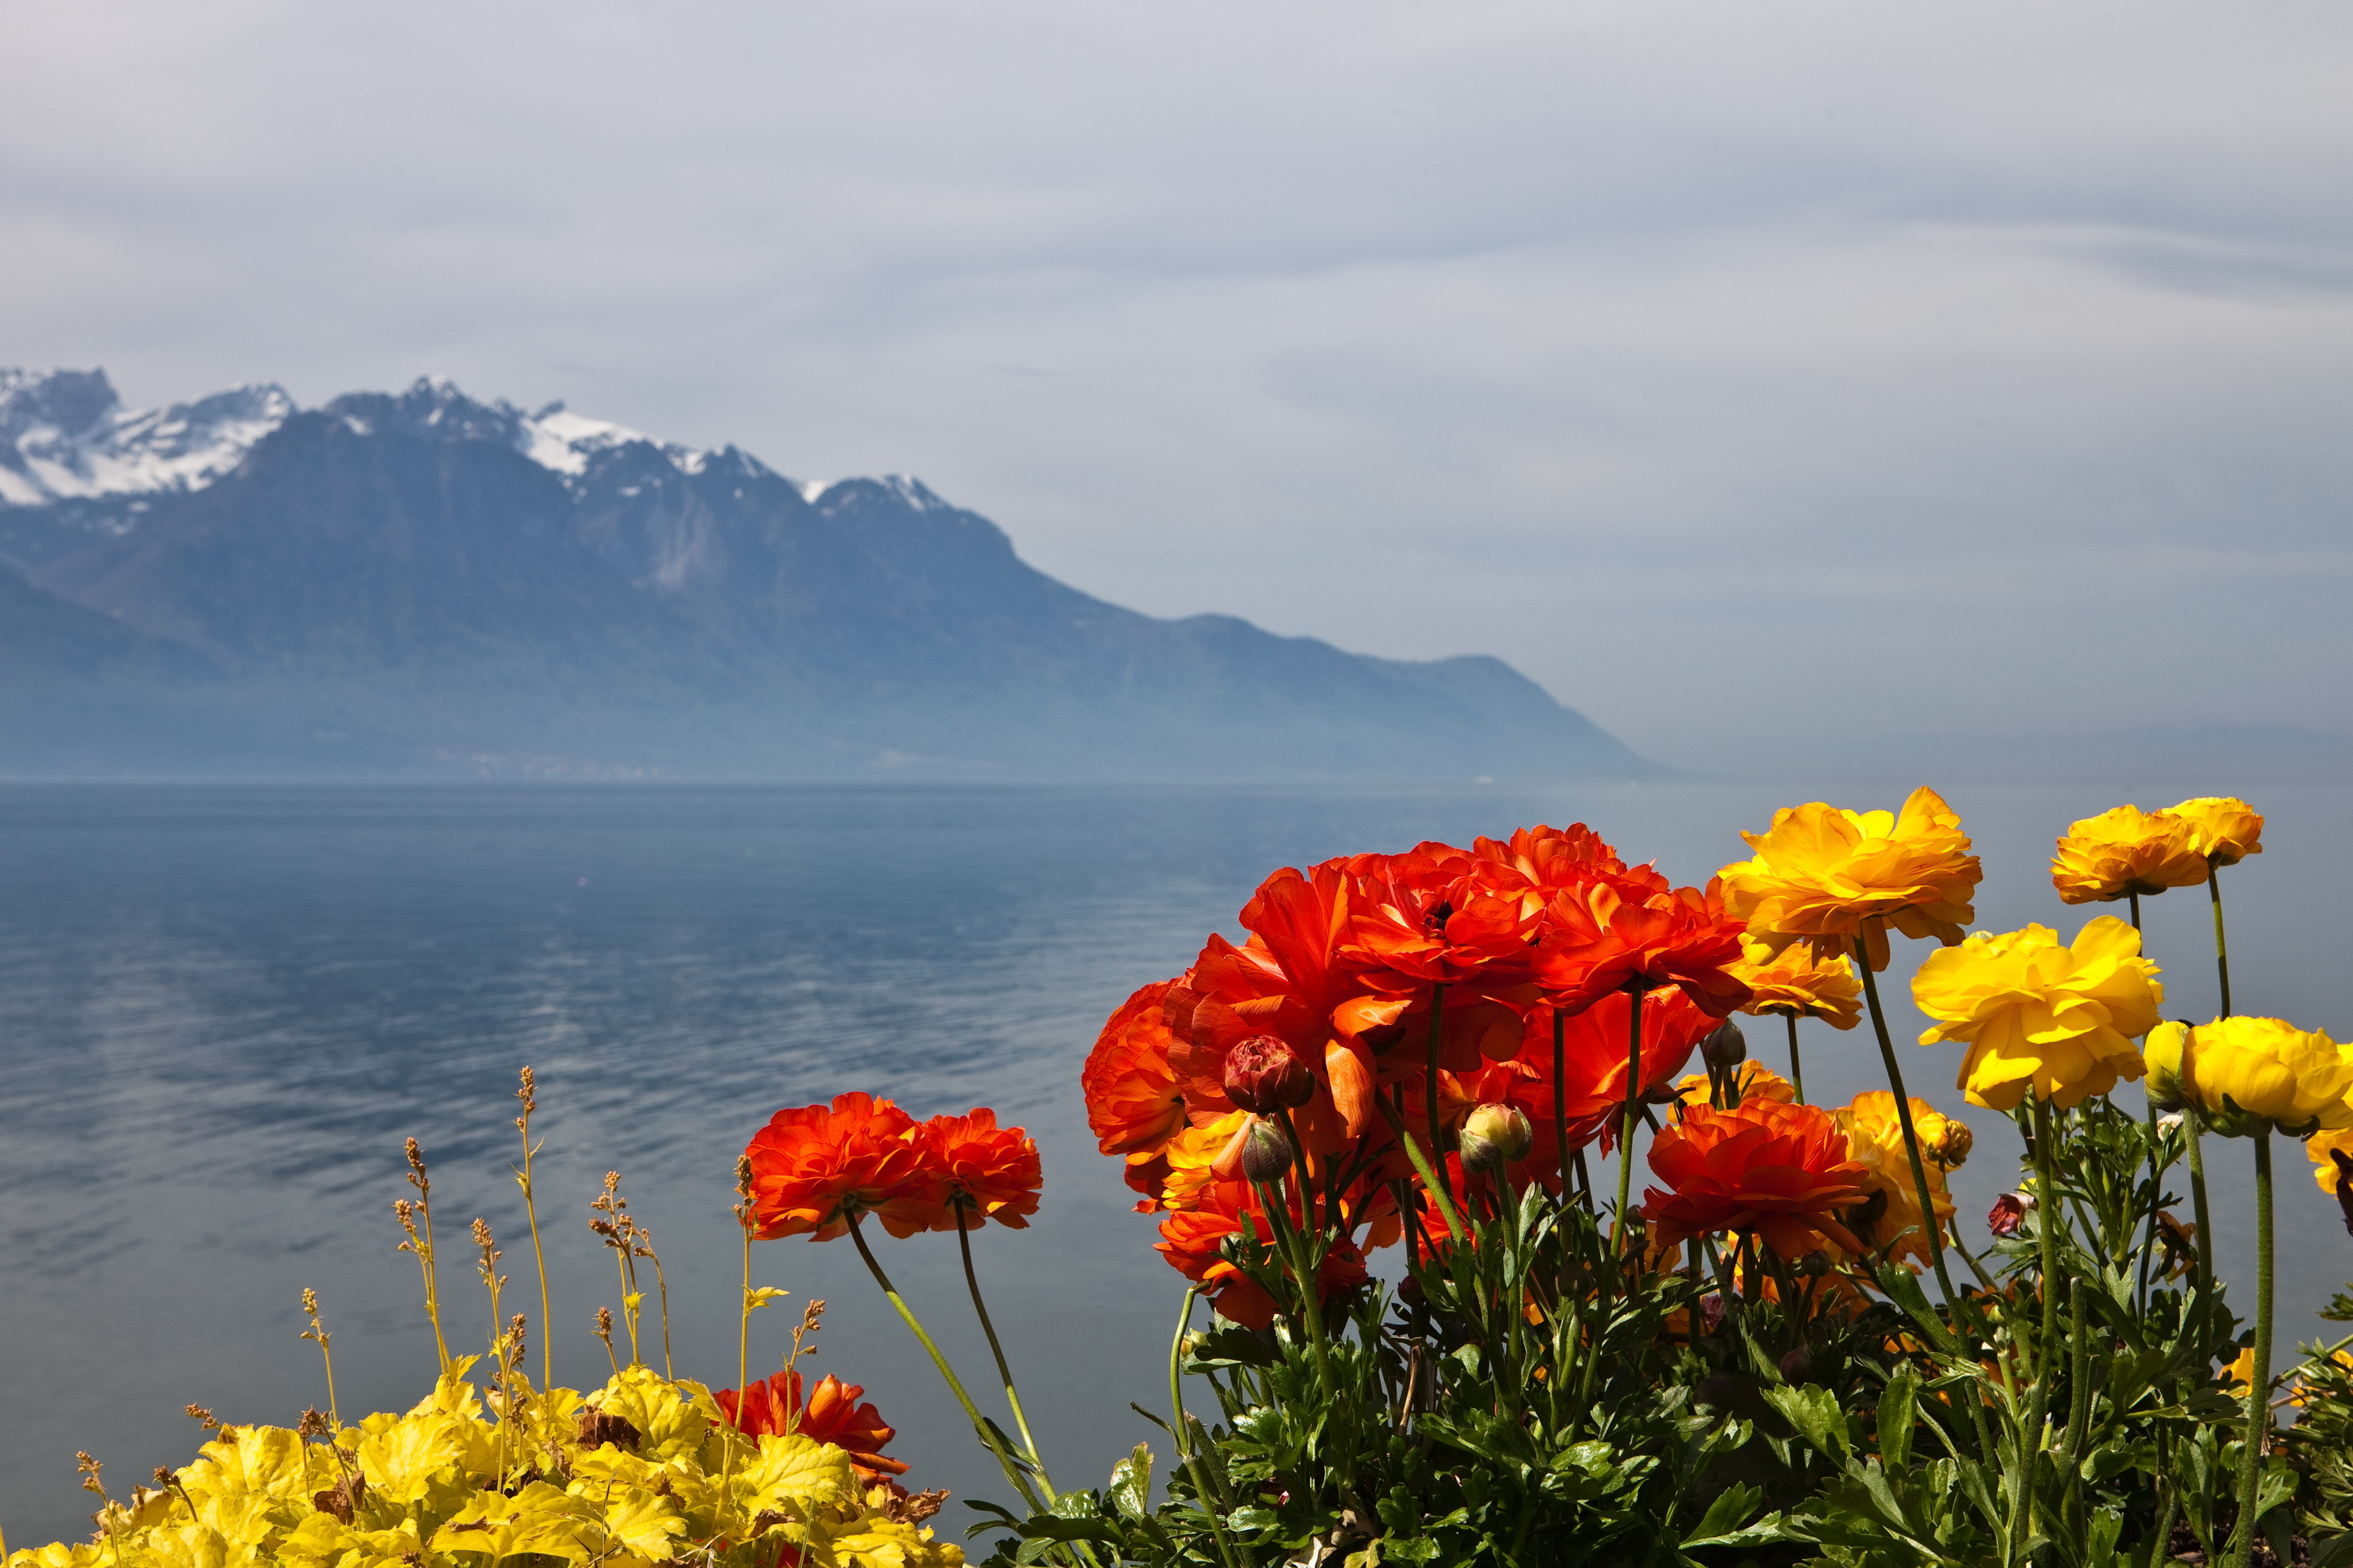 Scenery Switzerland Mountains Montreux Nature Flowers wallpaper ...